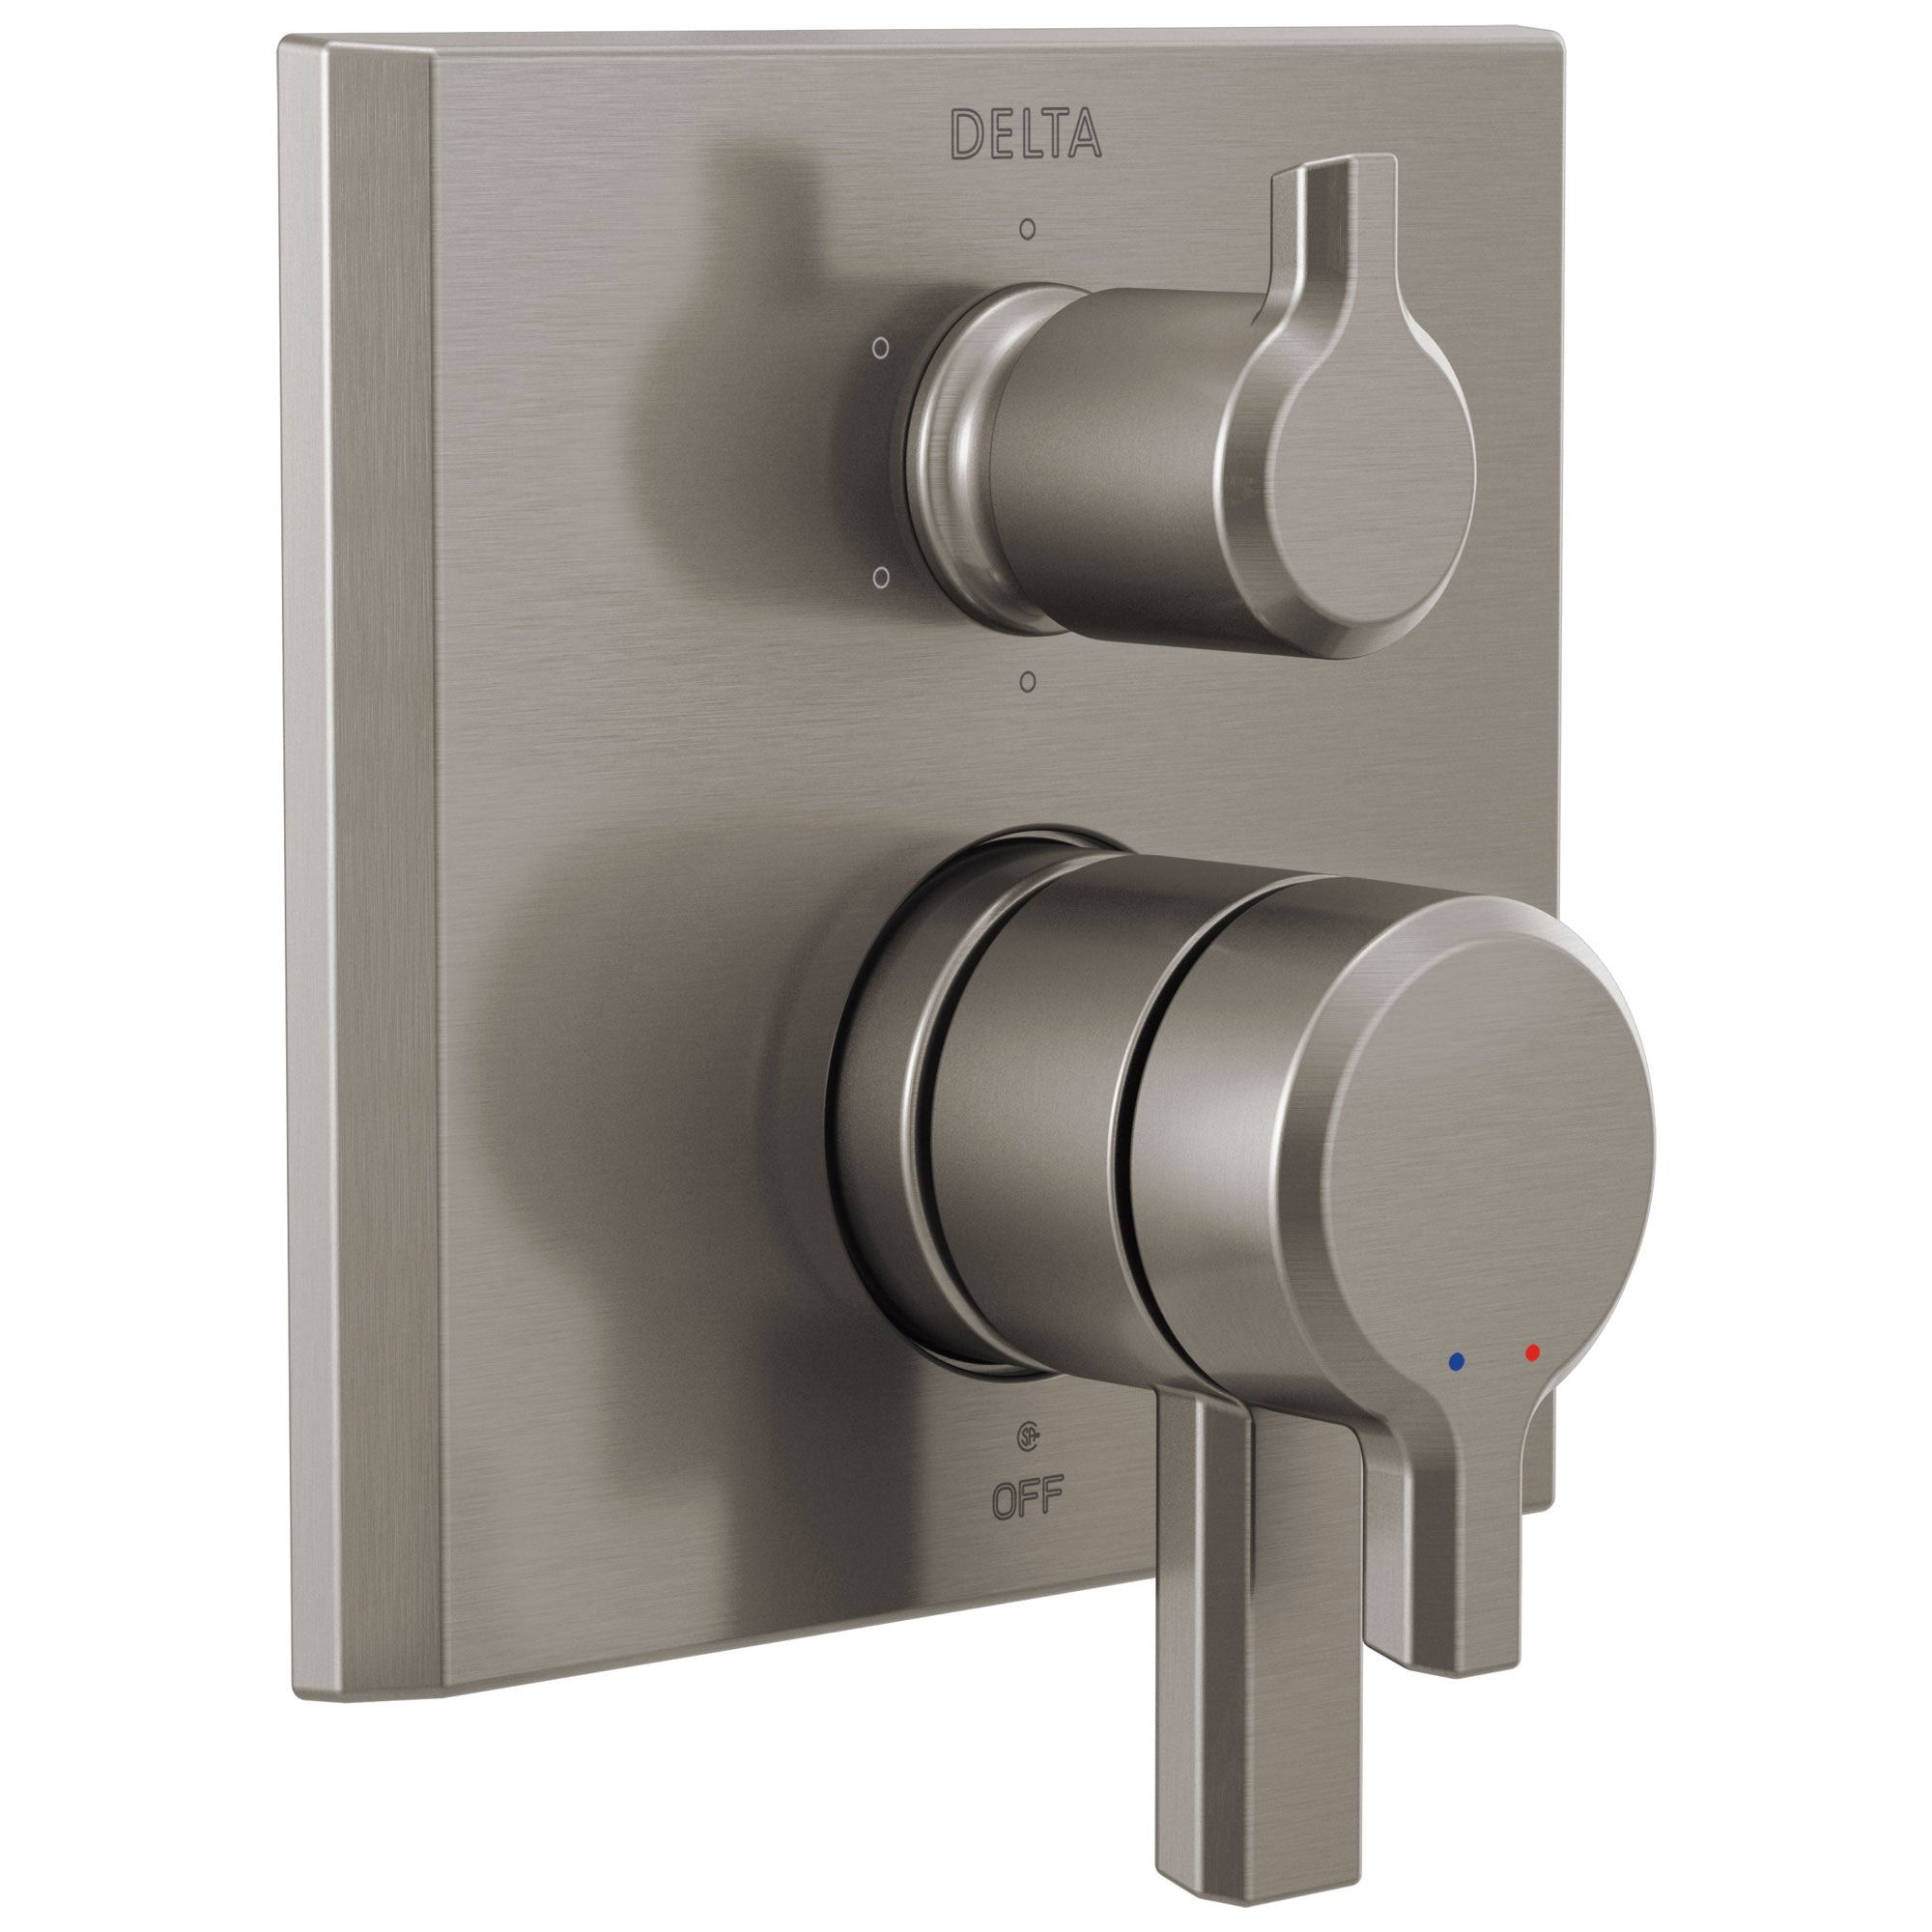 Delta Pivotal Stainless Steel Finish Monitor 17 Series Shower Control Trim Kit with 6-Setting Diverter (Requires Valve) DT27999SS